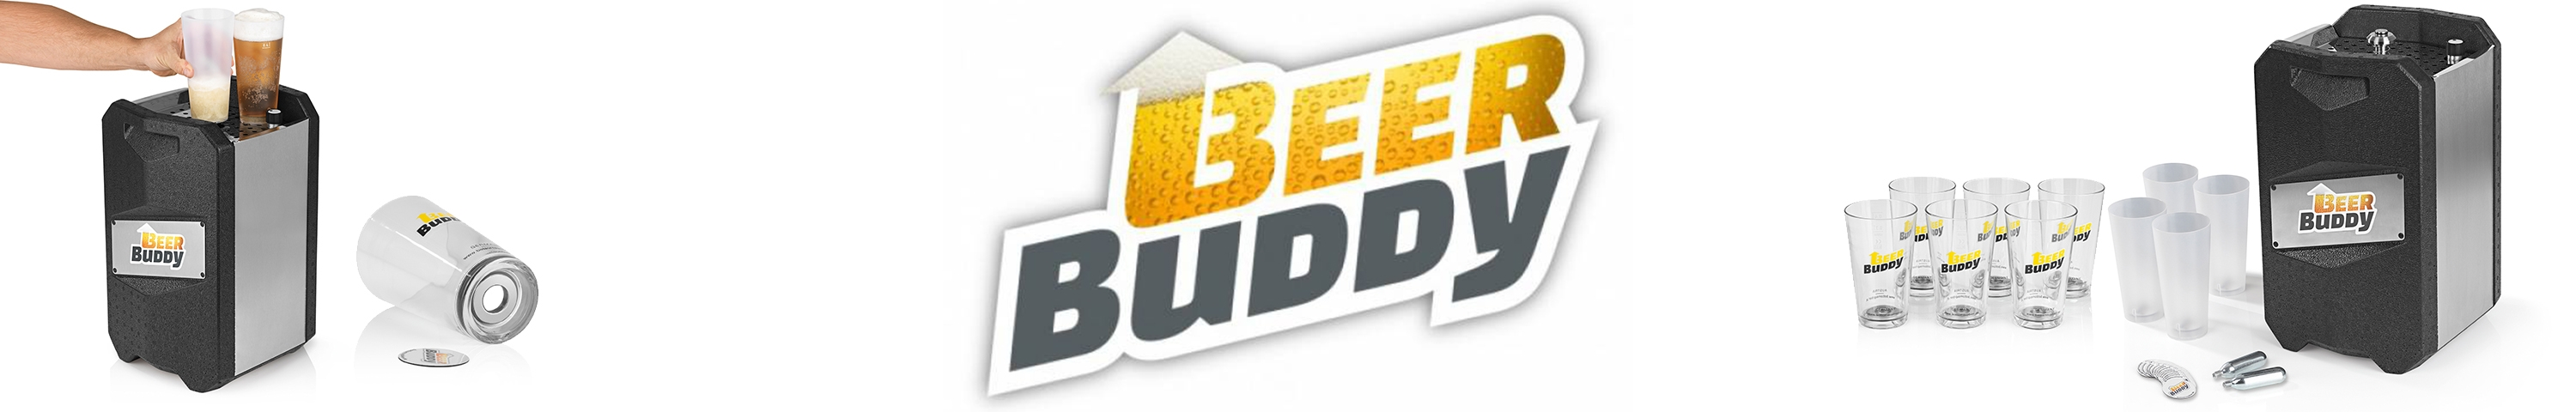 BEER BUDDY